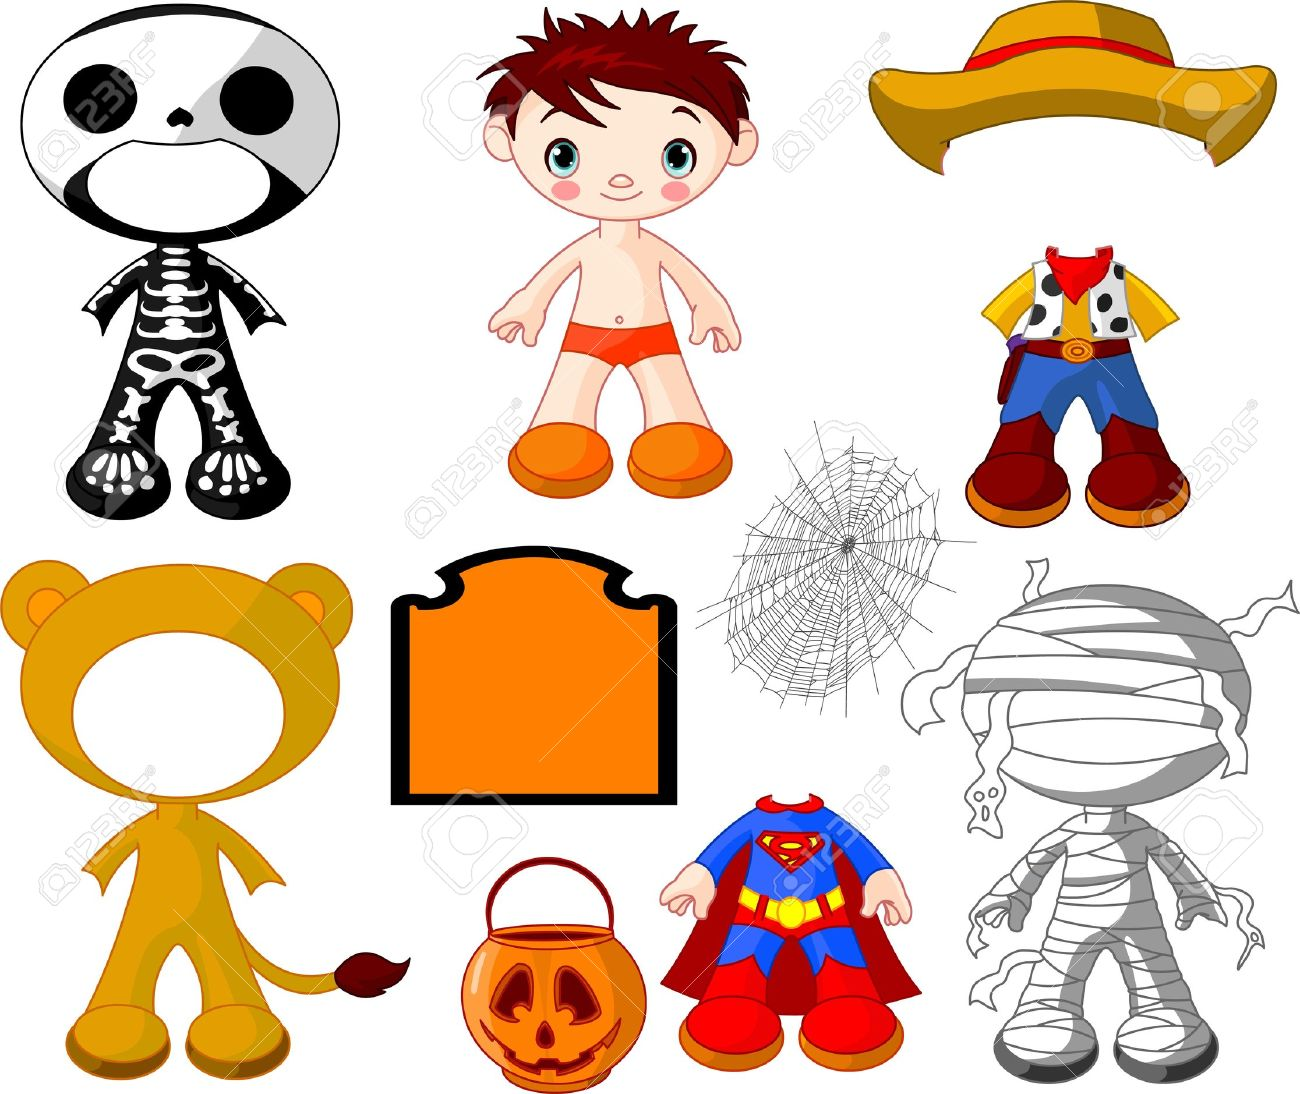 Paper Doll boy with costumes for Halloween Party Stock Vector - 10793860